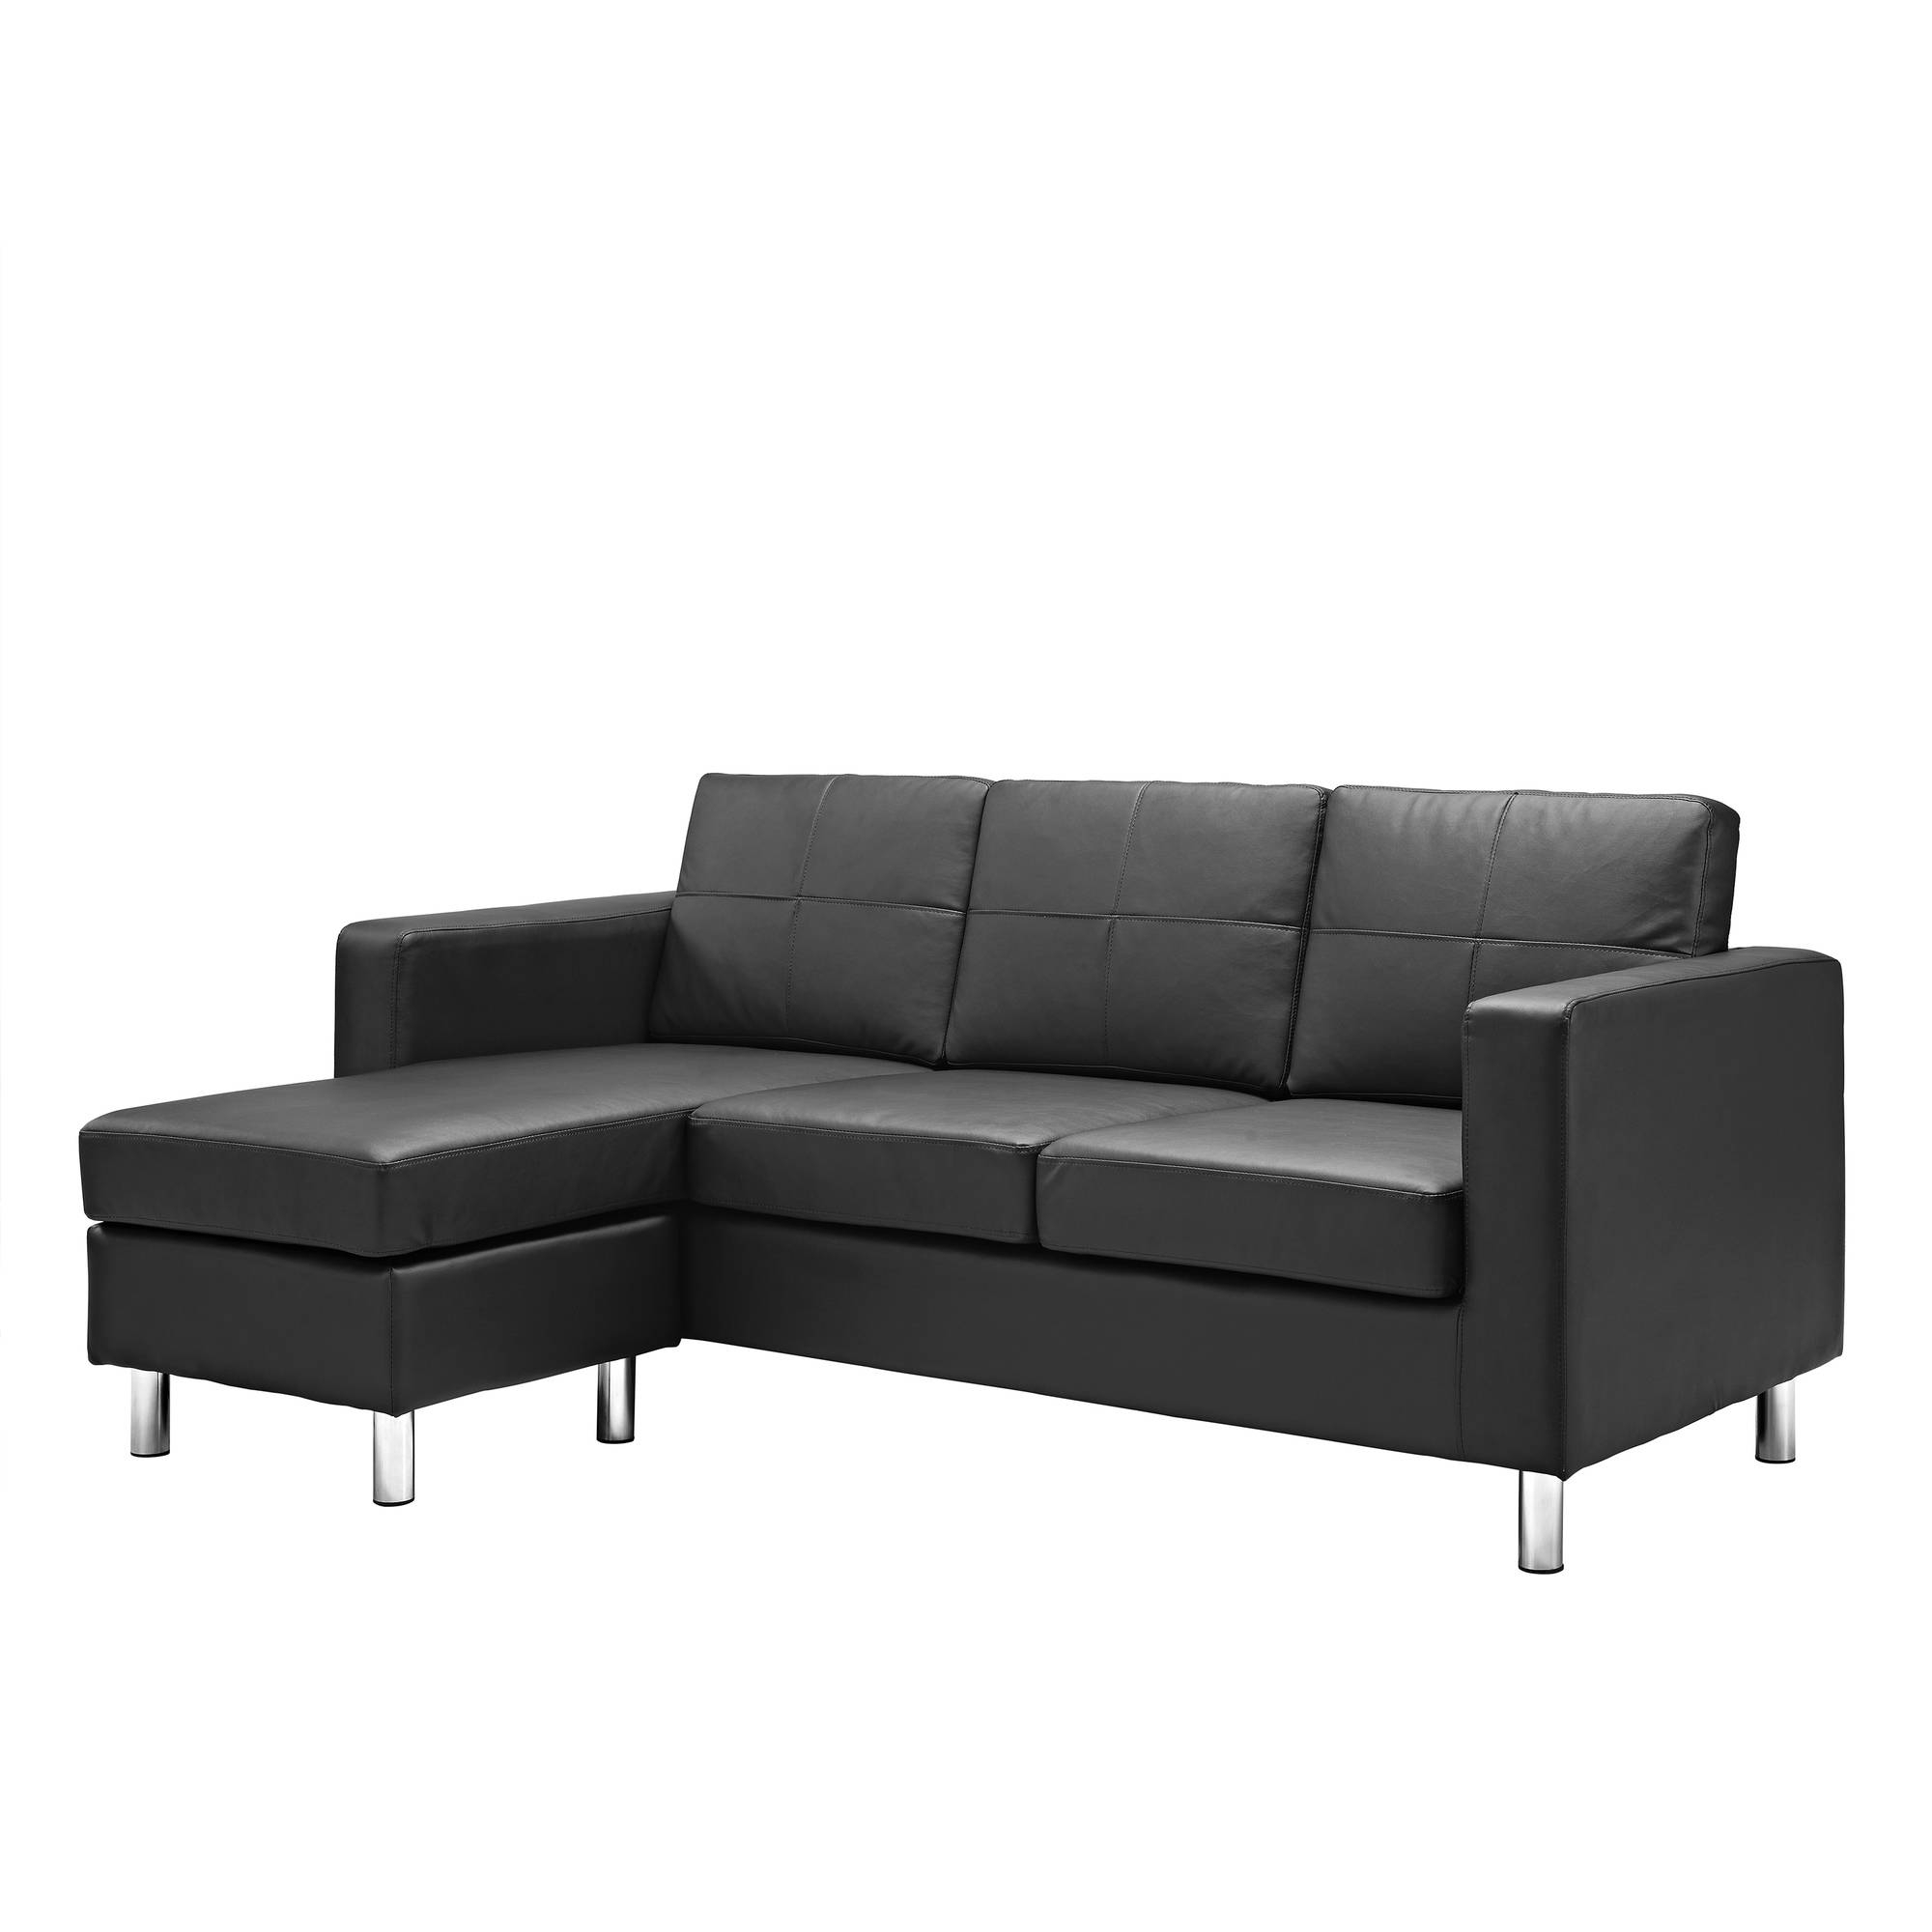 Dorel Living Small Spaces Configurable Sectional Sofa, Multiple For 2018 Sectional Sofas At Walmart (View 9 of 15)